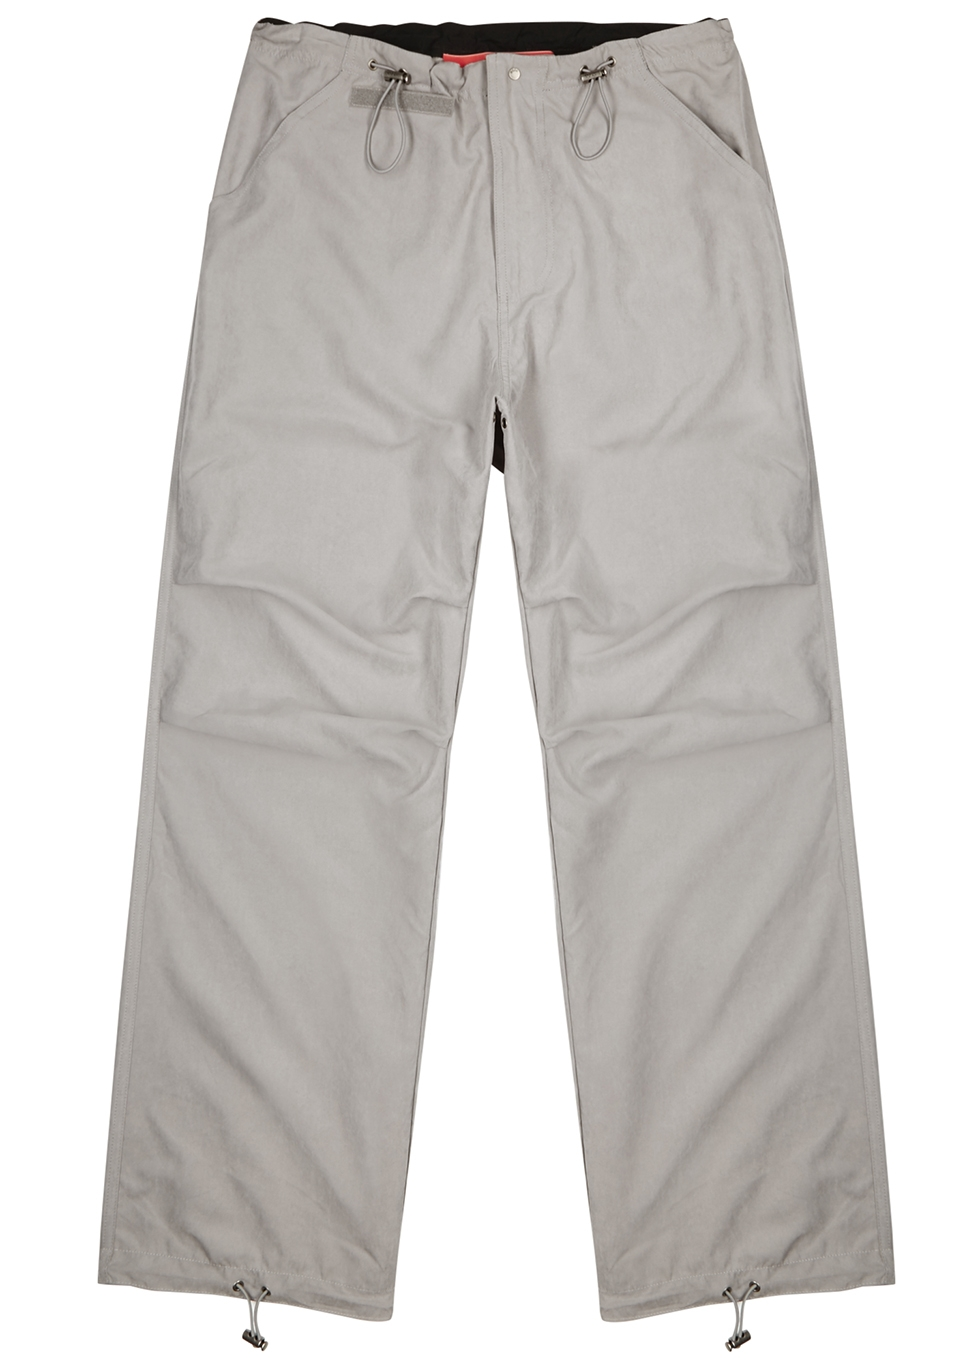 Rave grey trousers - 032c